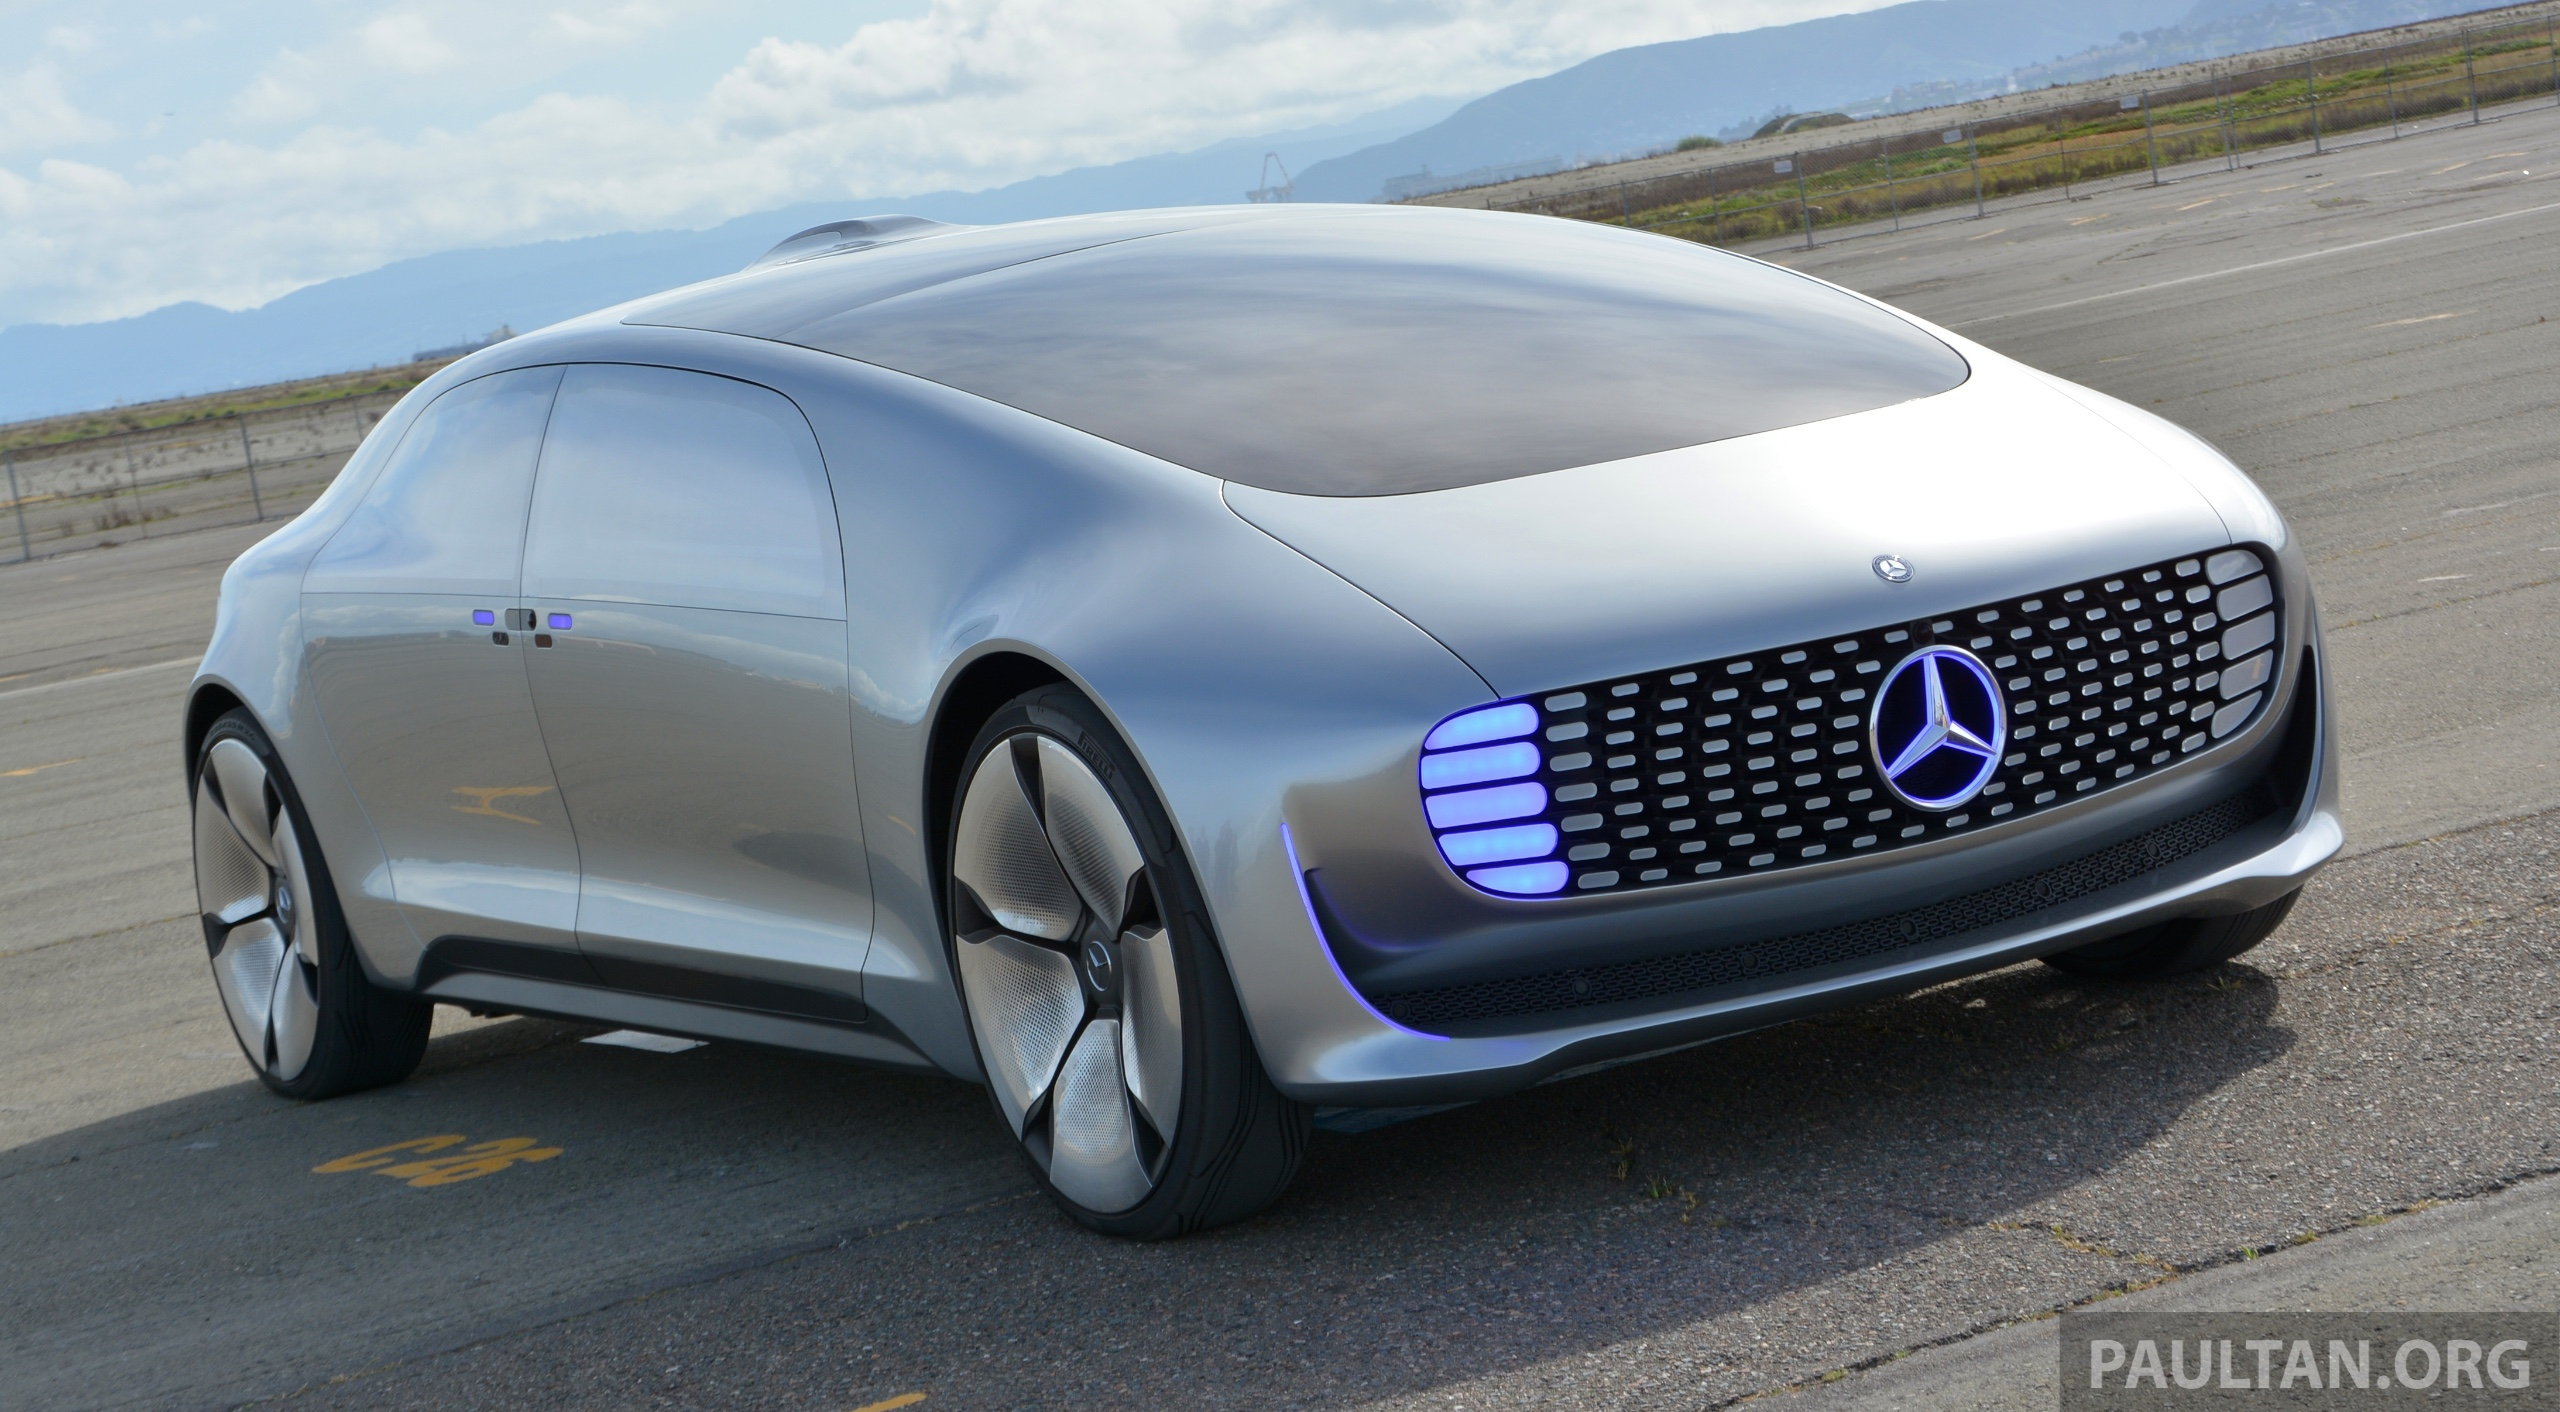 Driven mercedes benz f 015 luxury in motion in sf image for San francisco mercedes benz